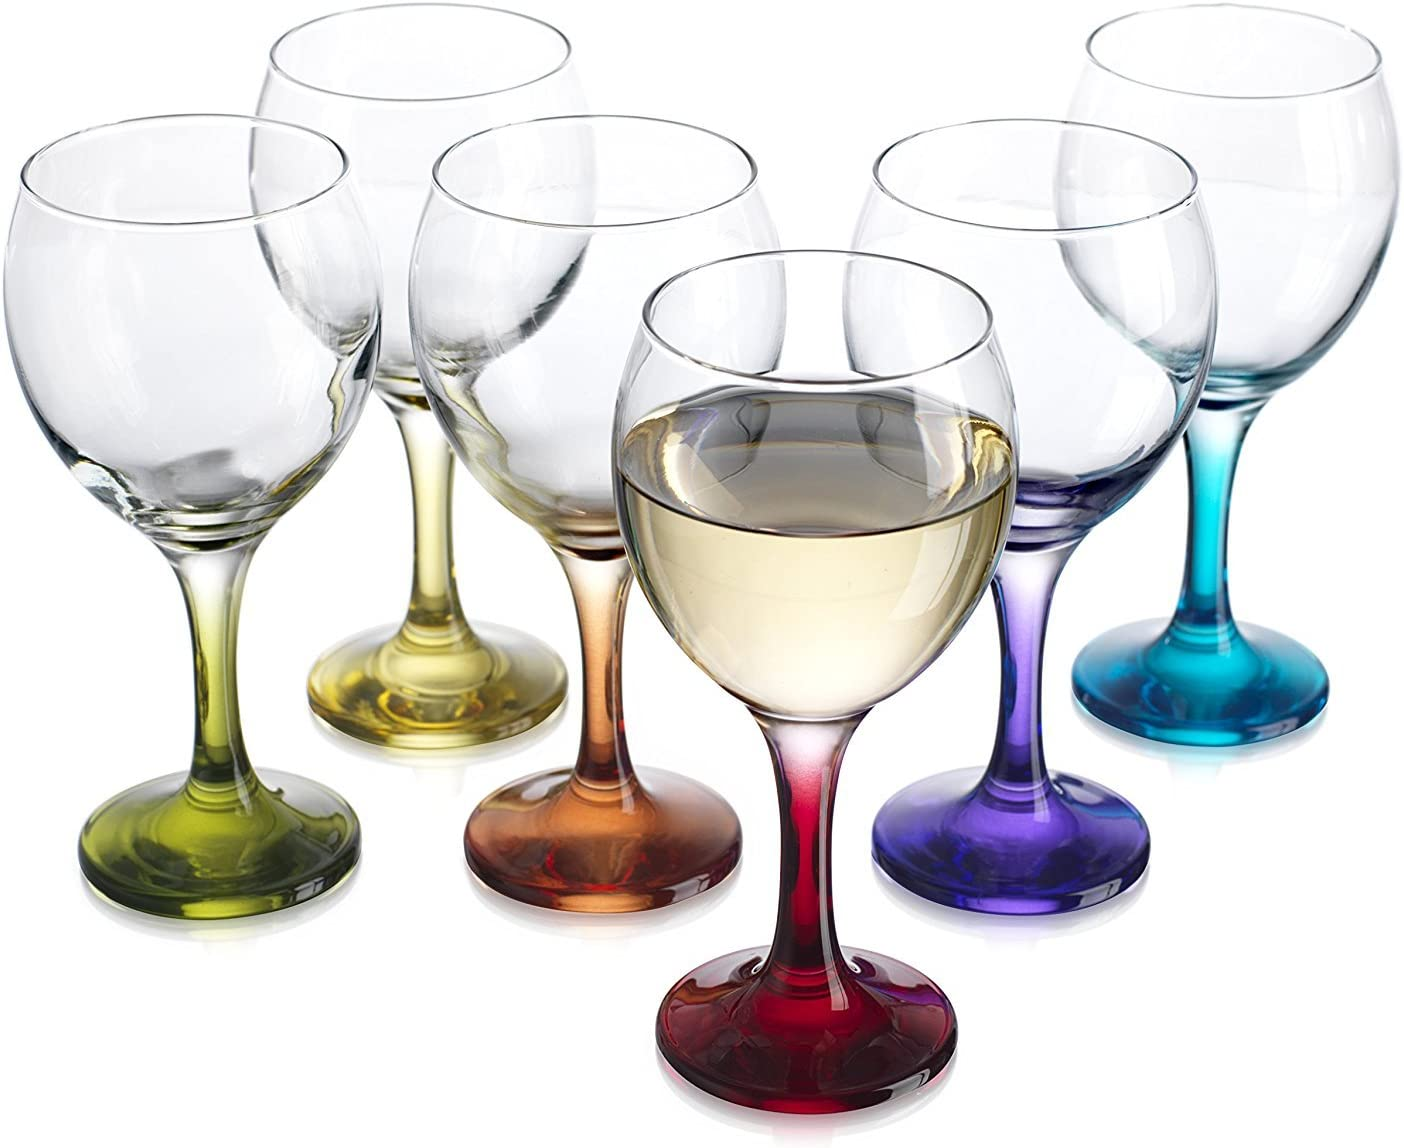 10 oz clear glass Set of 6 Wine Glasses FREE SHIPPING